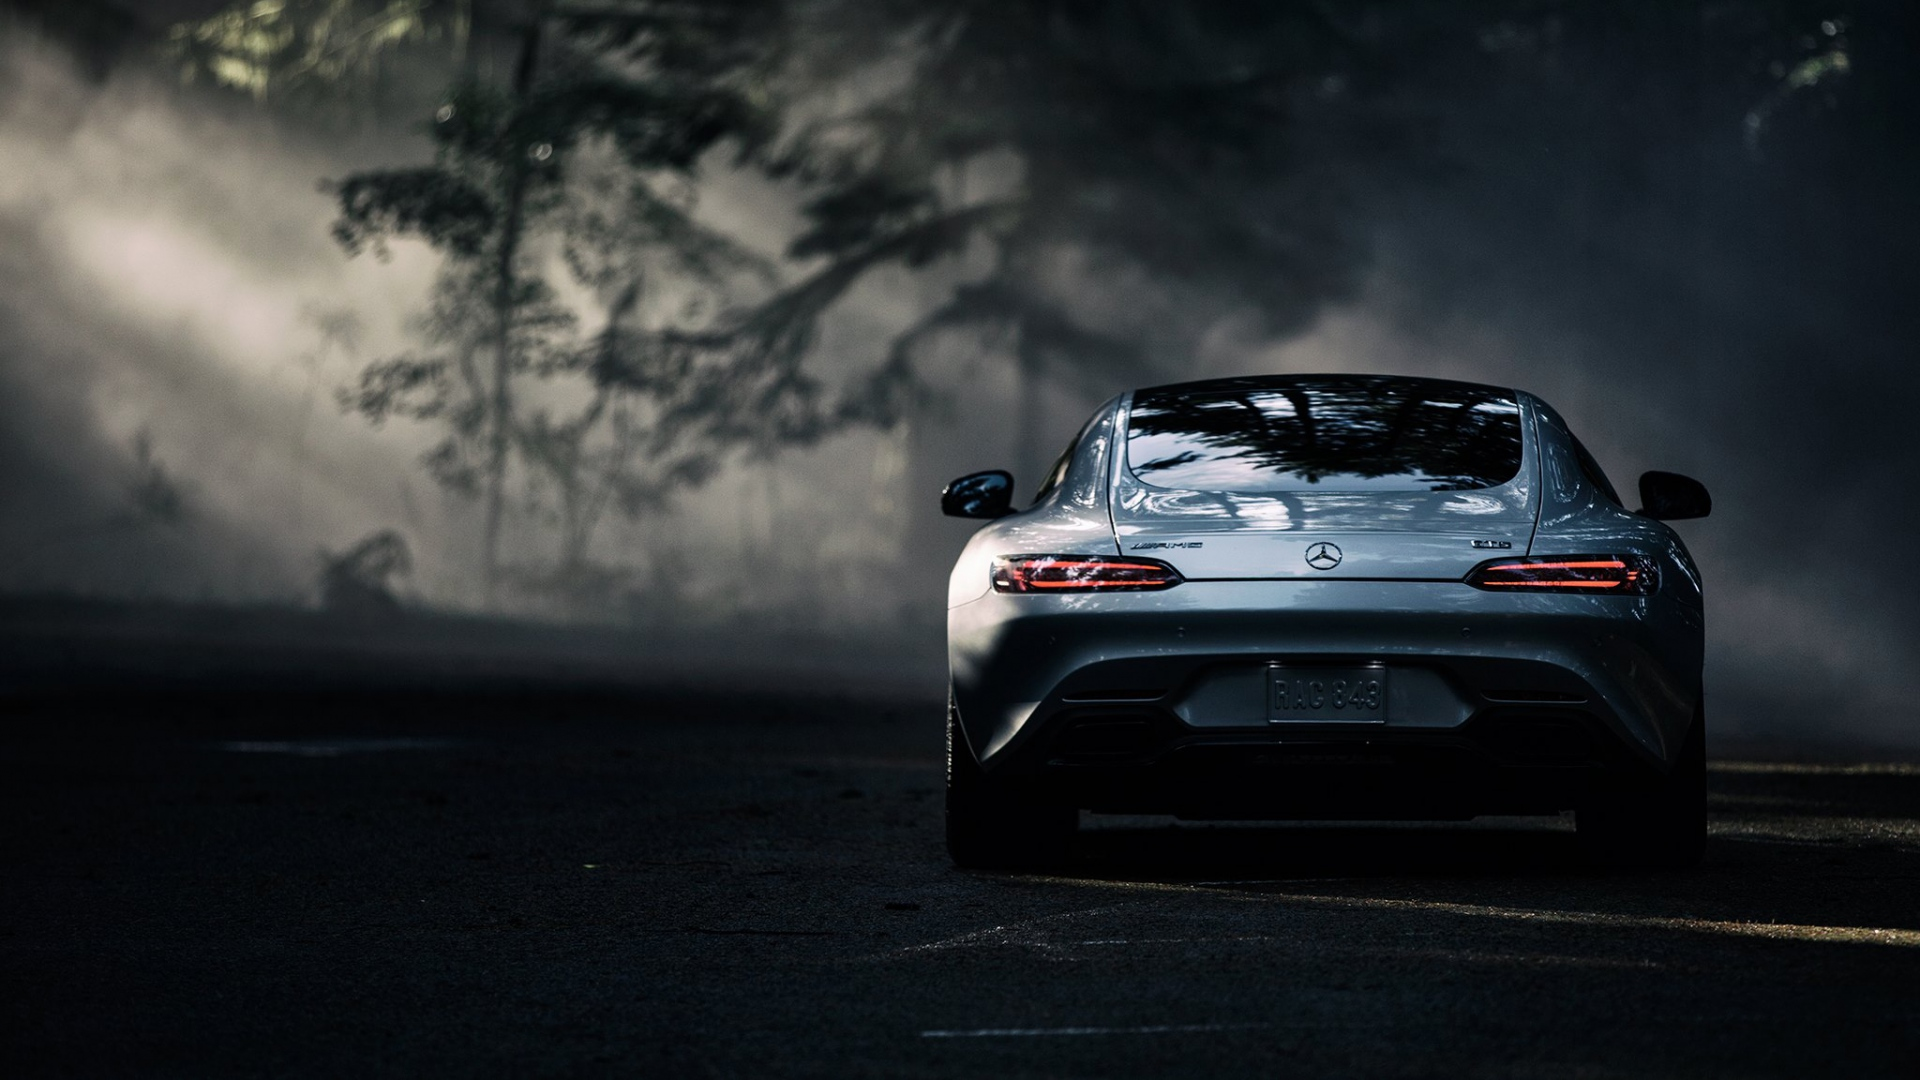 Mercedes benz Amg Gt s 2016 Rear view Full HD 1080p HD Background 1920x1080